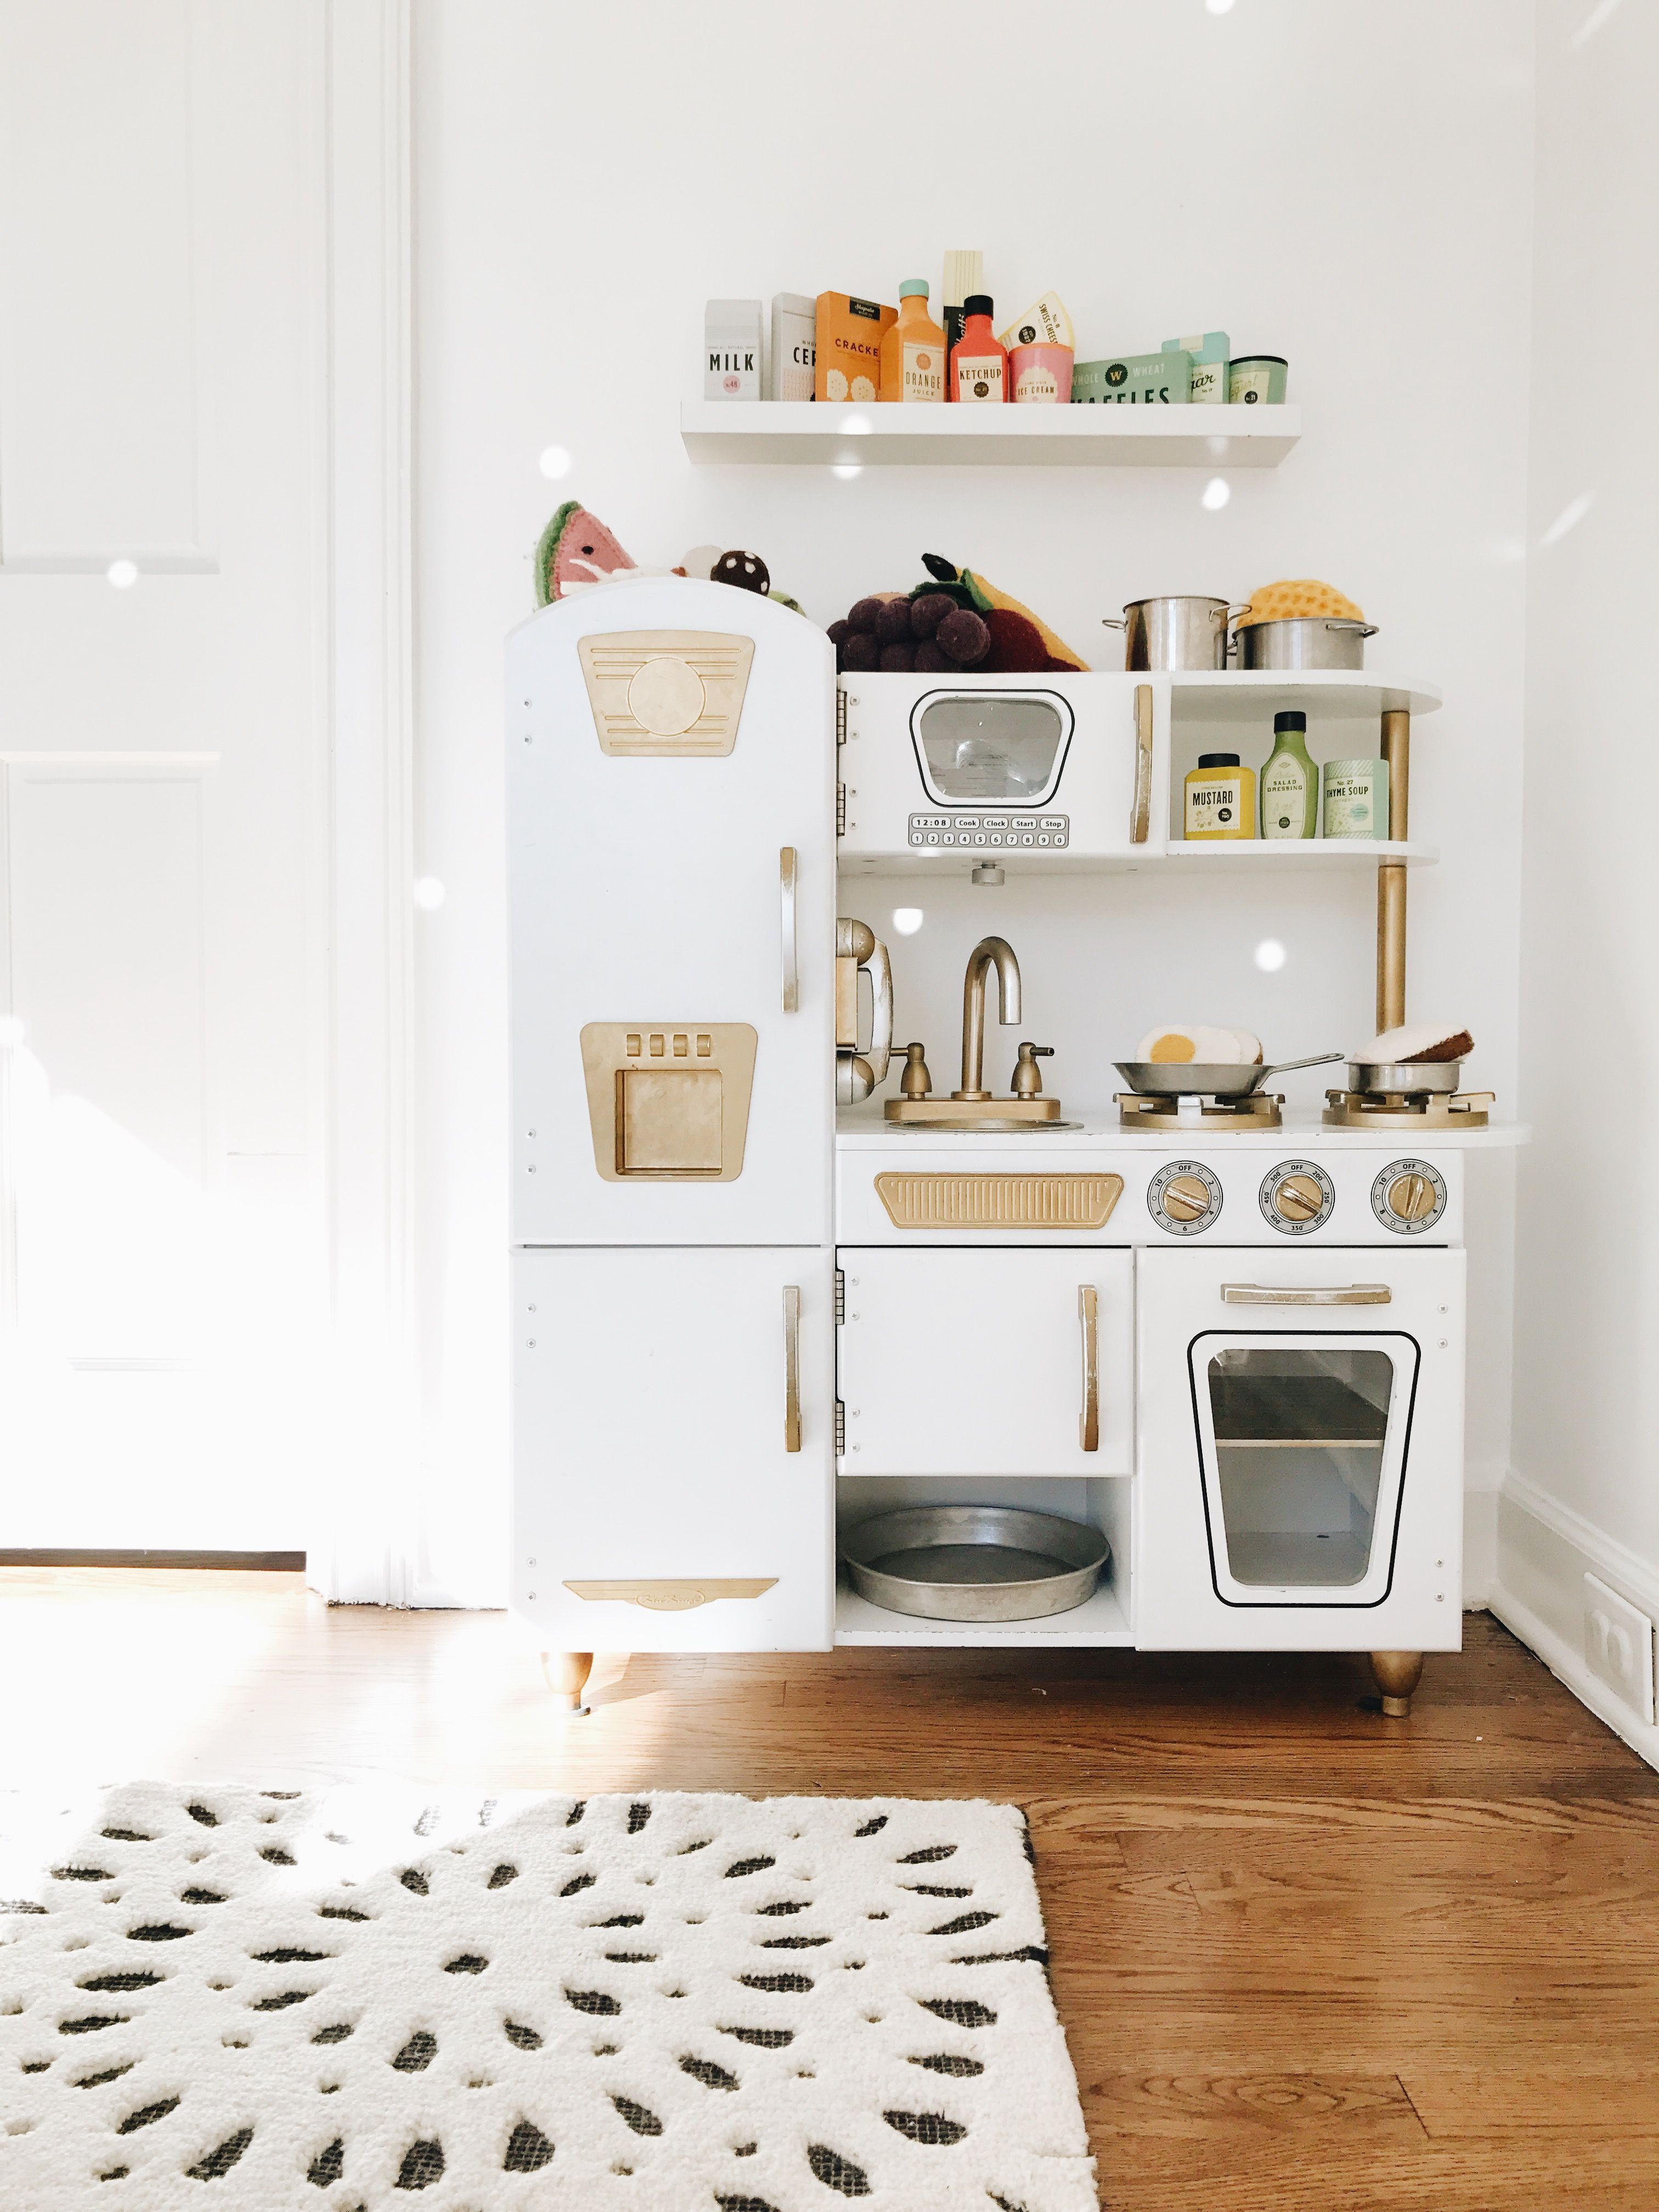 Embrace the mess | Playroom storage, Playrooms and Storage ideas